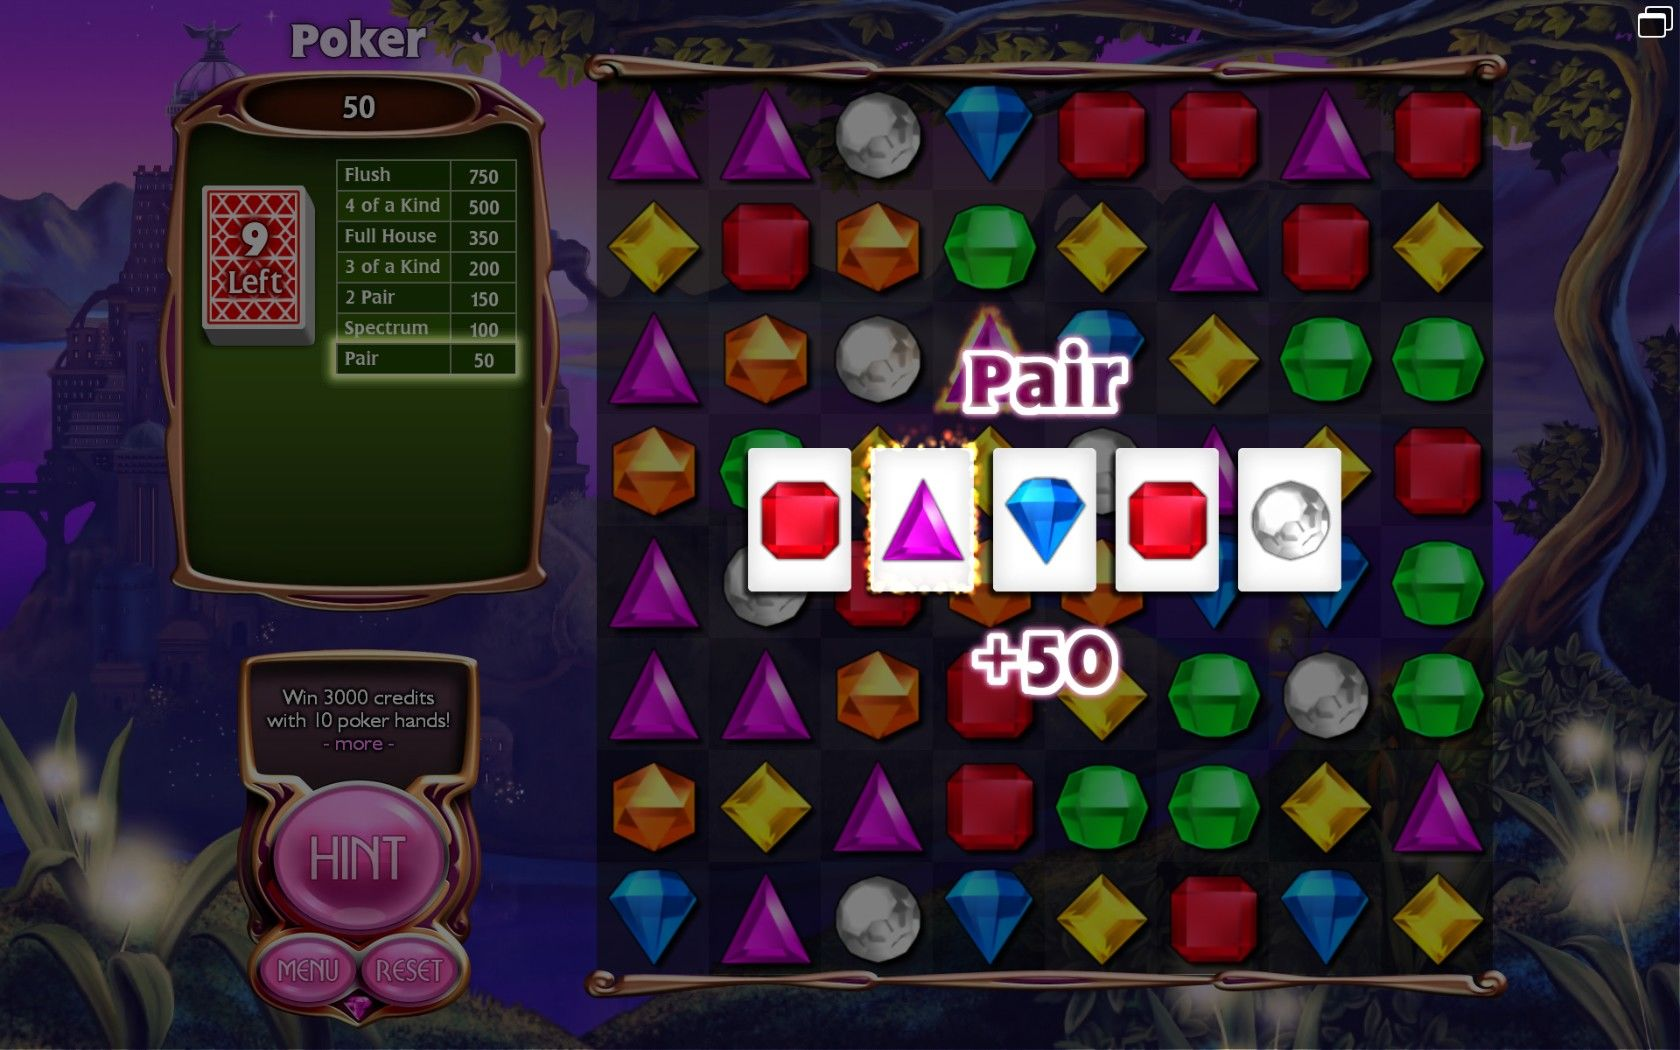 Flush poker bejeweled 3 gambling in the philippines essay